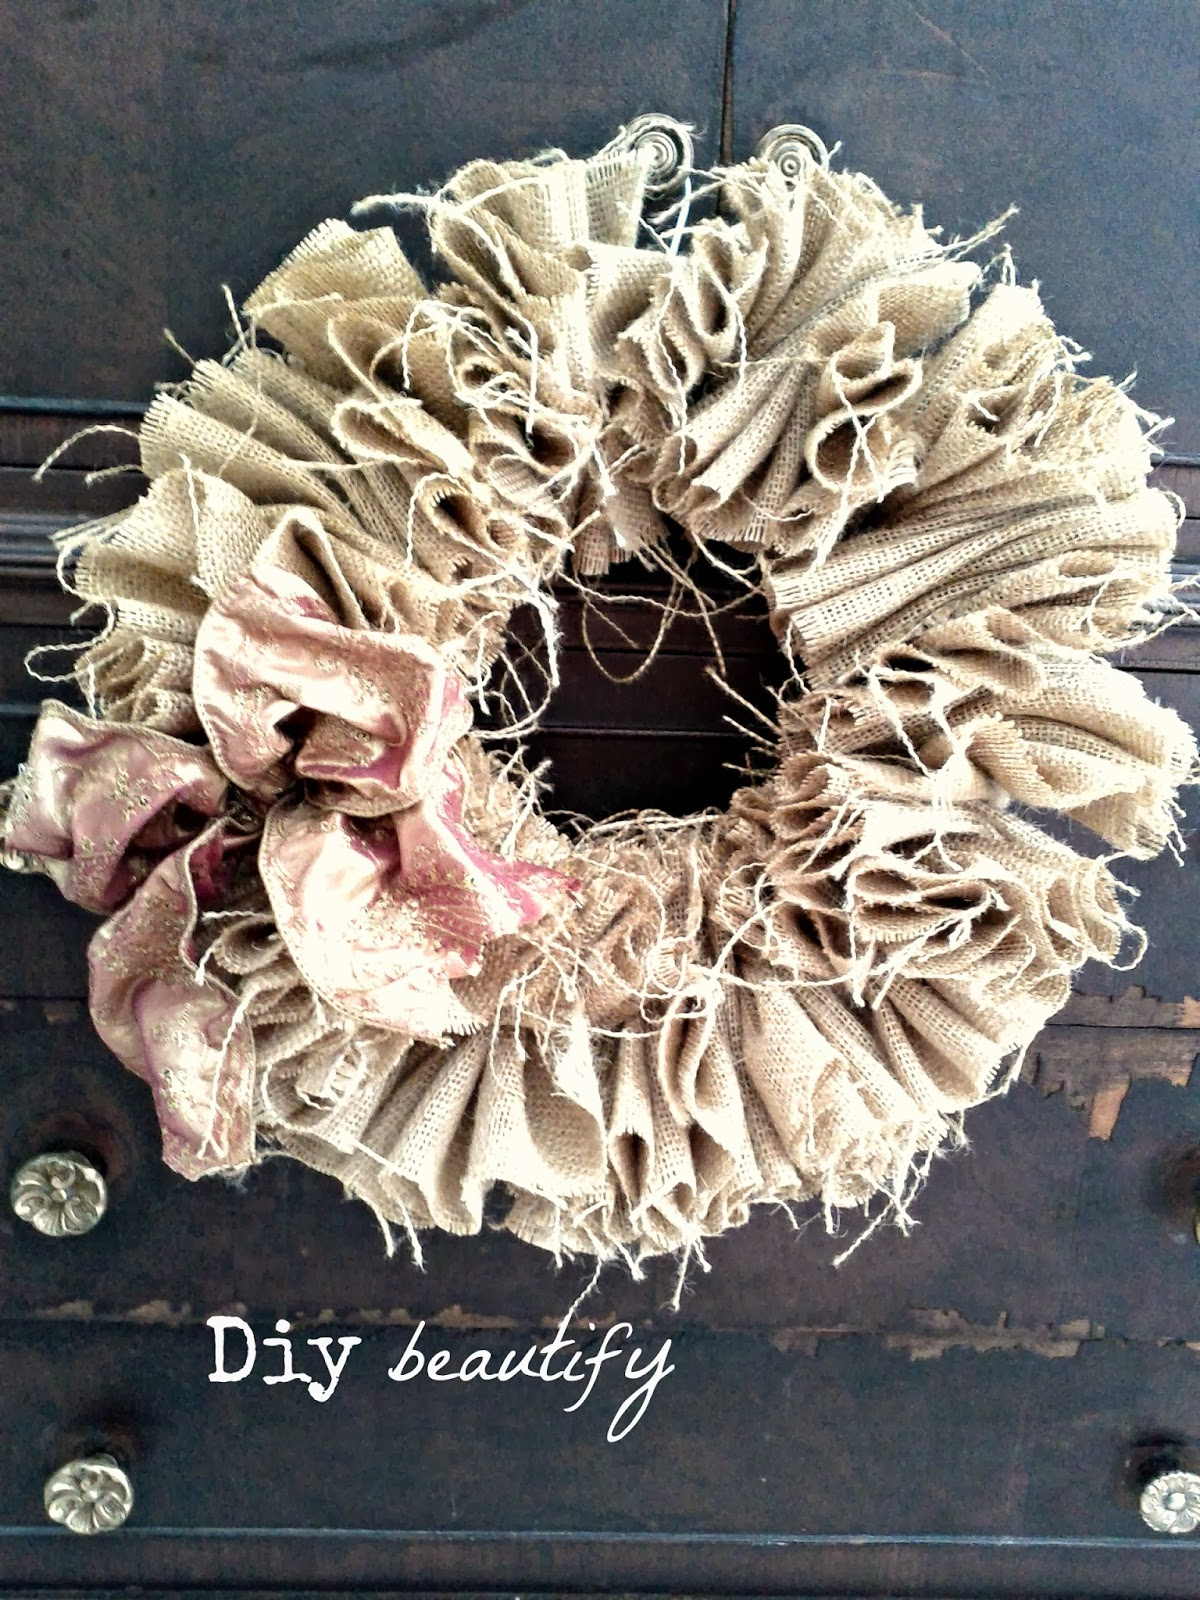 Features and How to Make Burlap Wreaths for Halloween   DIY beautify